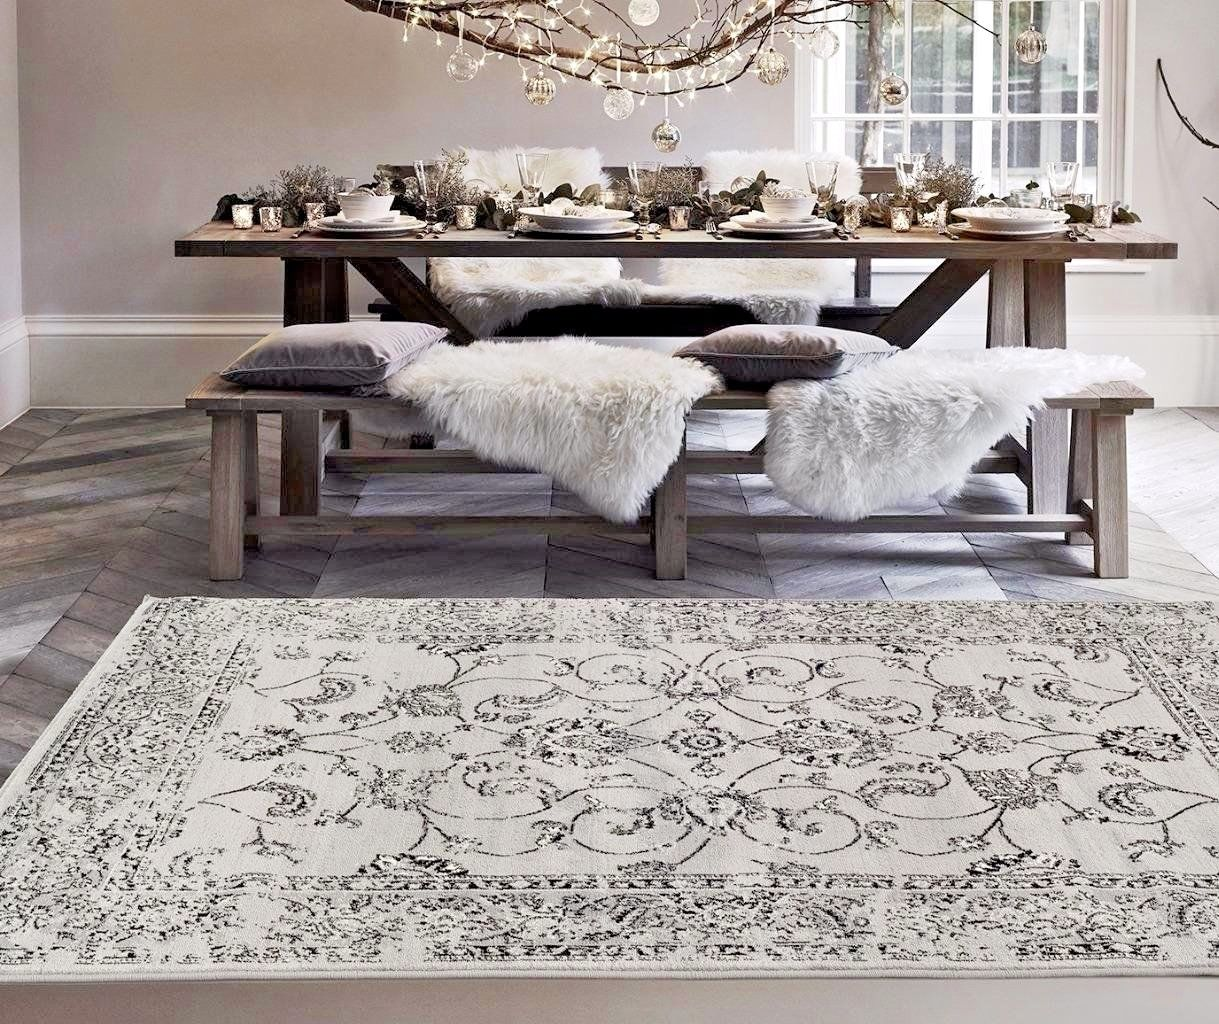 Large floor rugs – benefits and placing tips